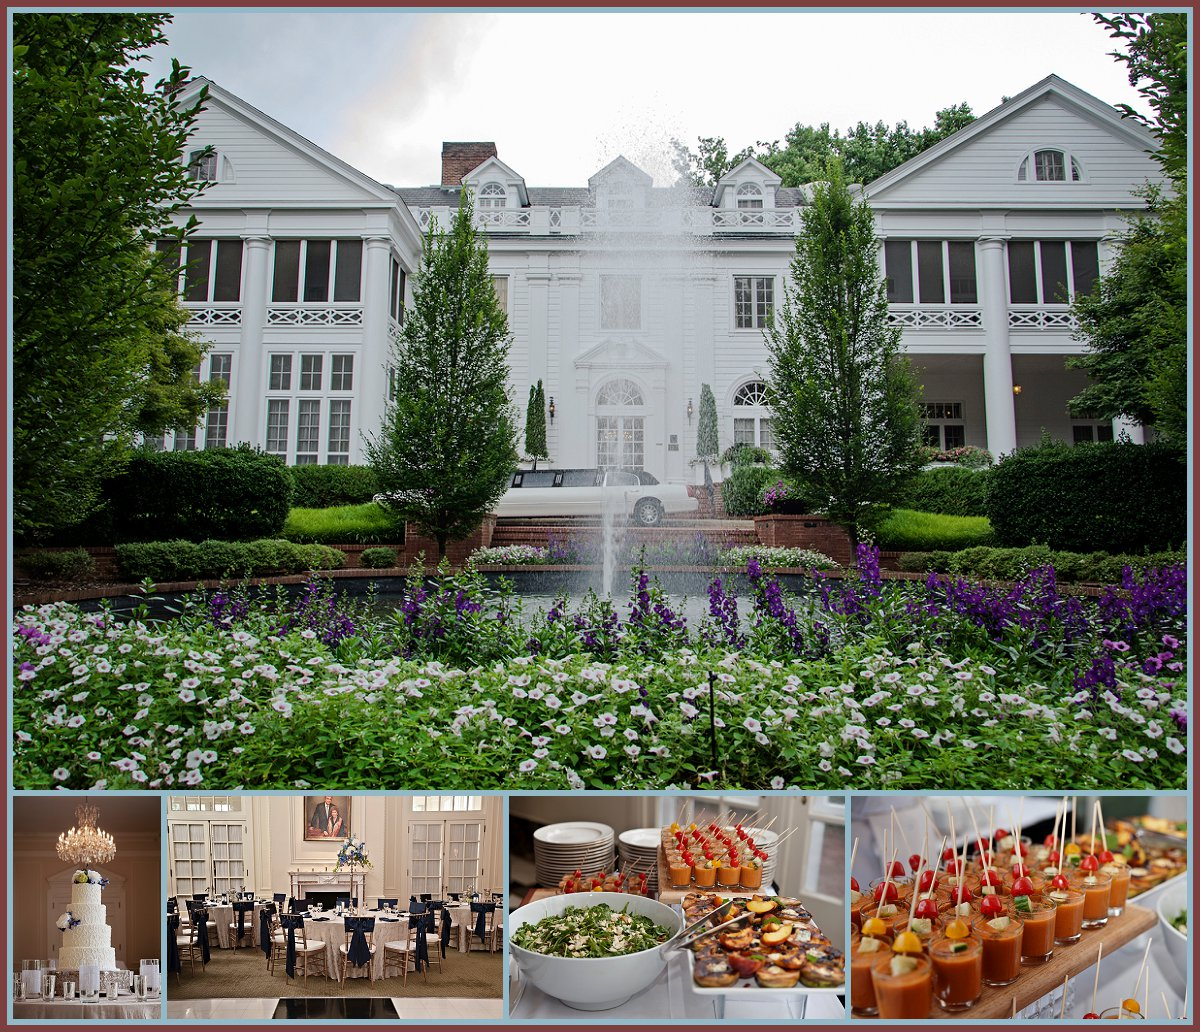 Top landscapers in charlotte nc - The Top 5 Places To Have Your Wedding In Charlotte Nc